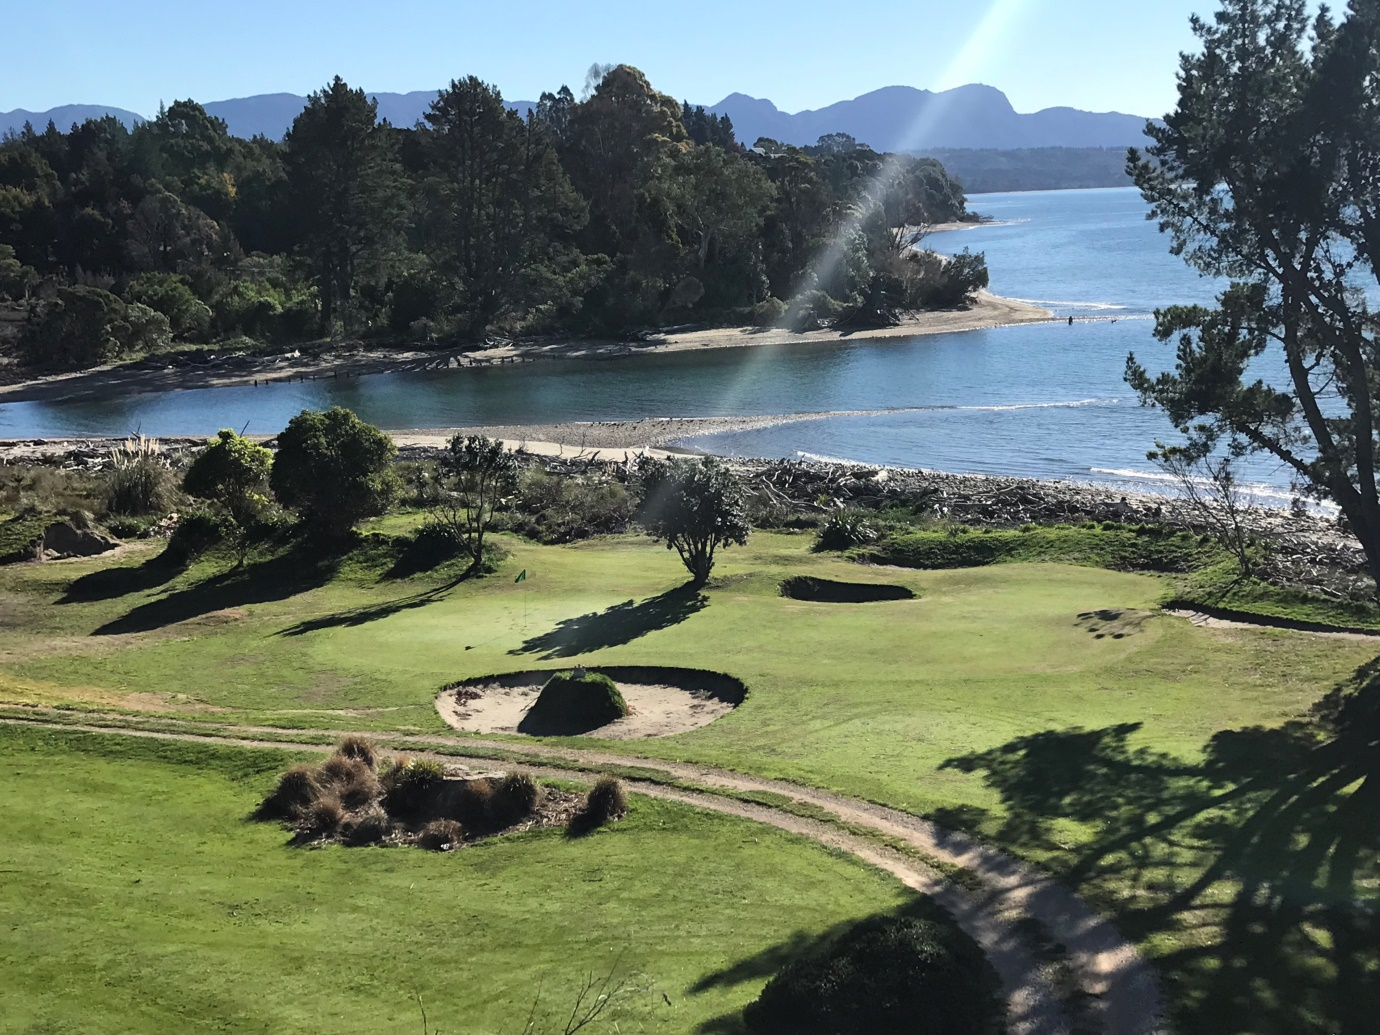 The 12th green – surrounded by 5 bunkers and ocean behind